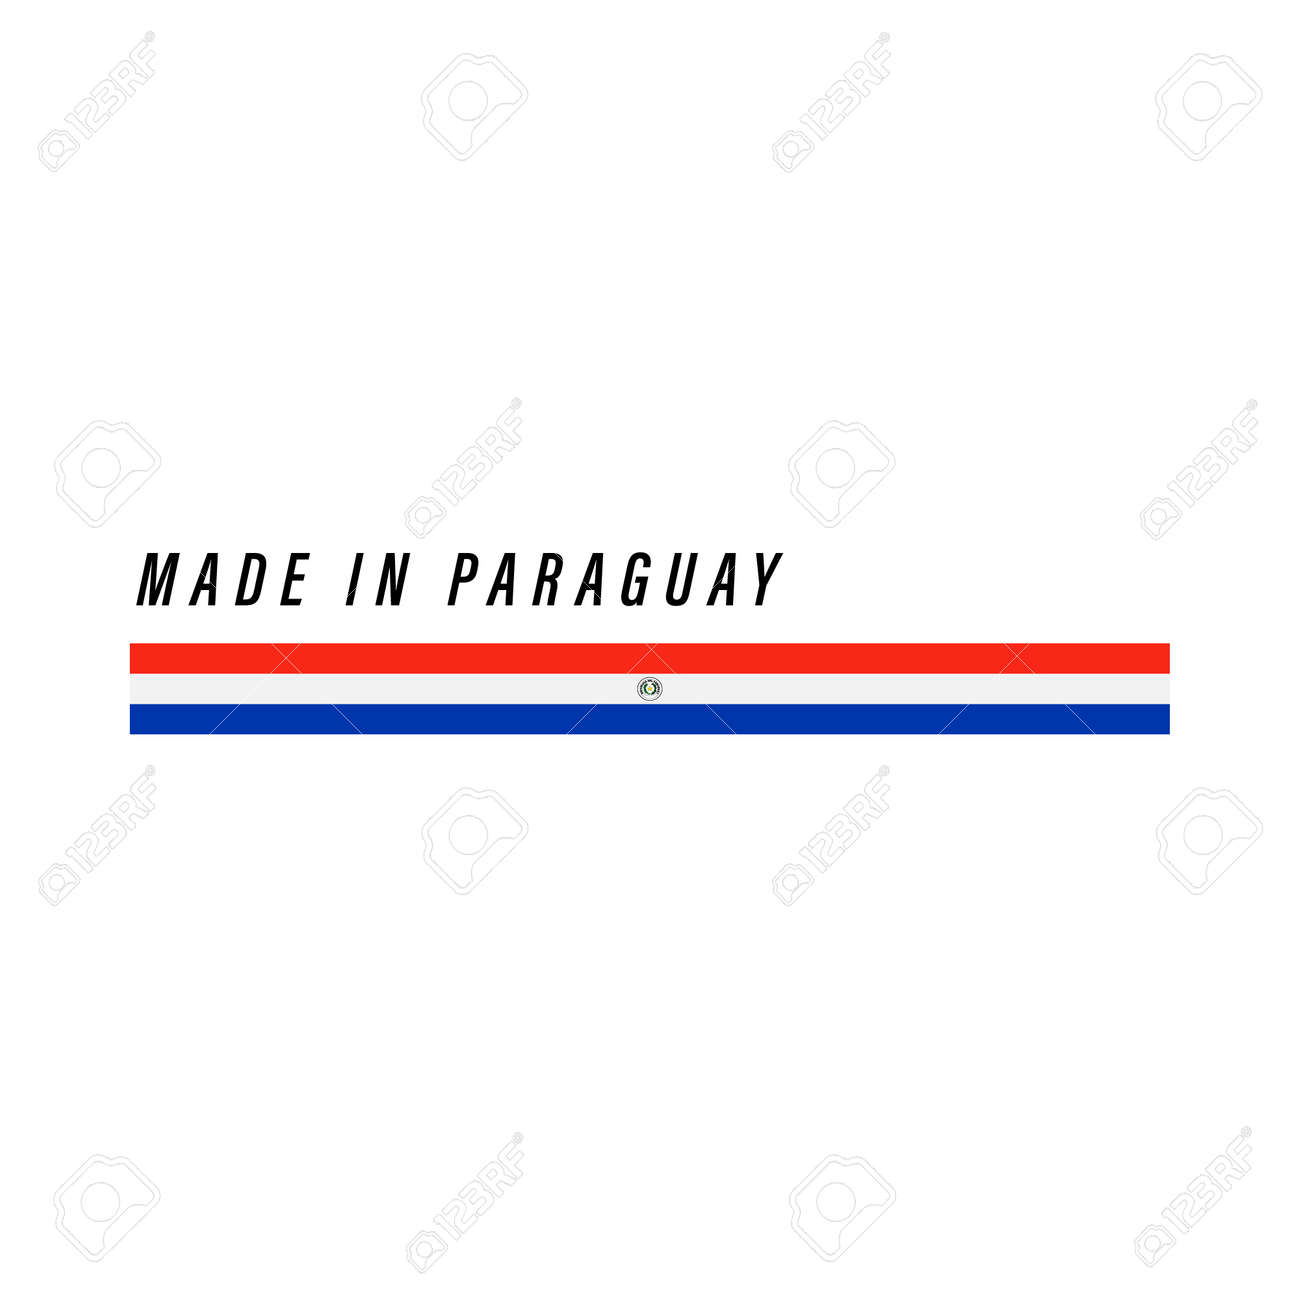 Made in Paraguay, badge or label with flag isolated on white background - 168929111